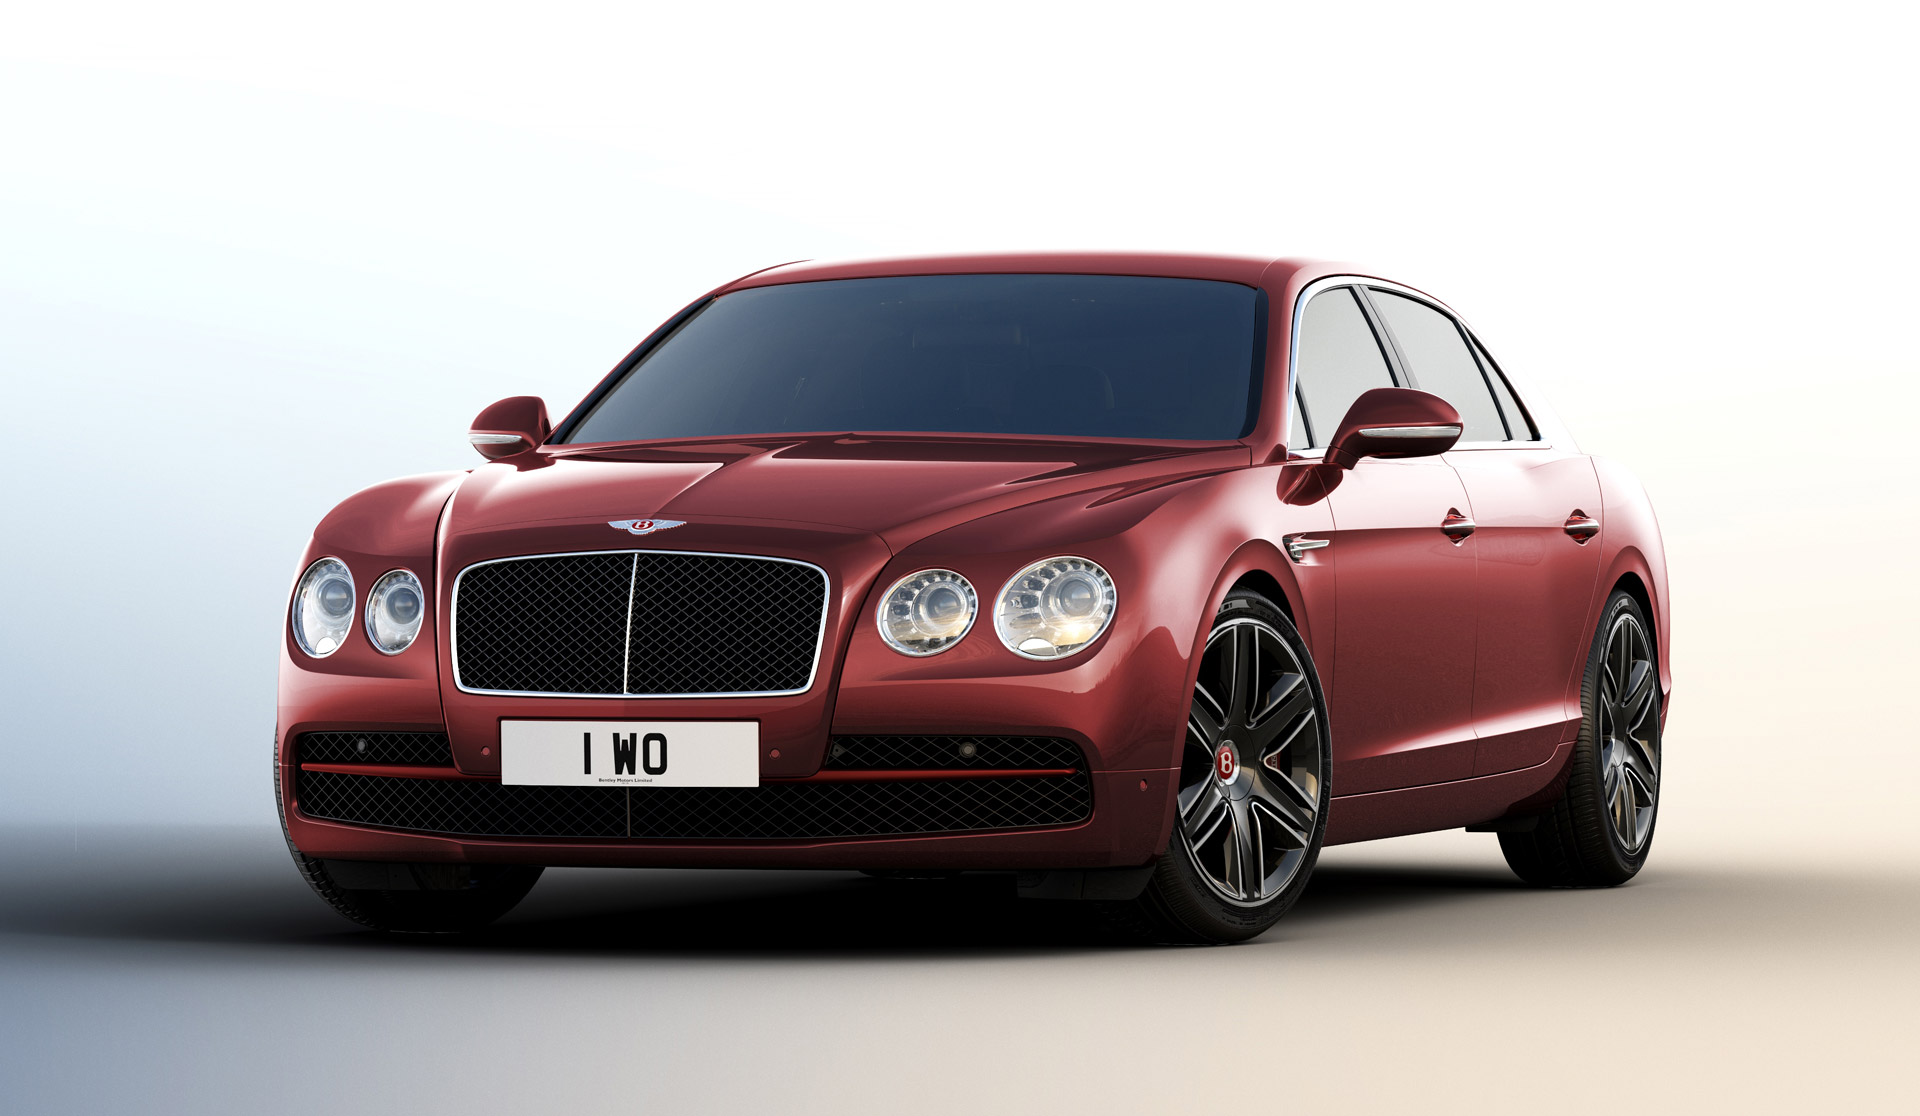 power qatar qar spur prices cars bentley full finance bently option v in review automatic price flying property model